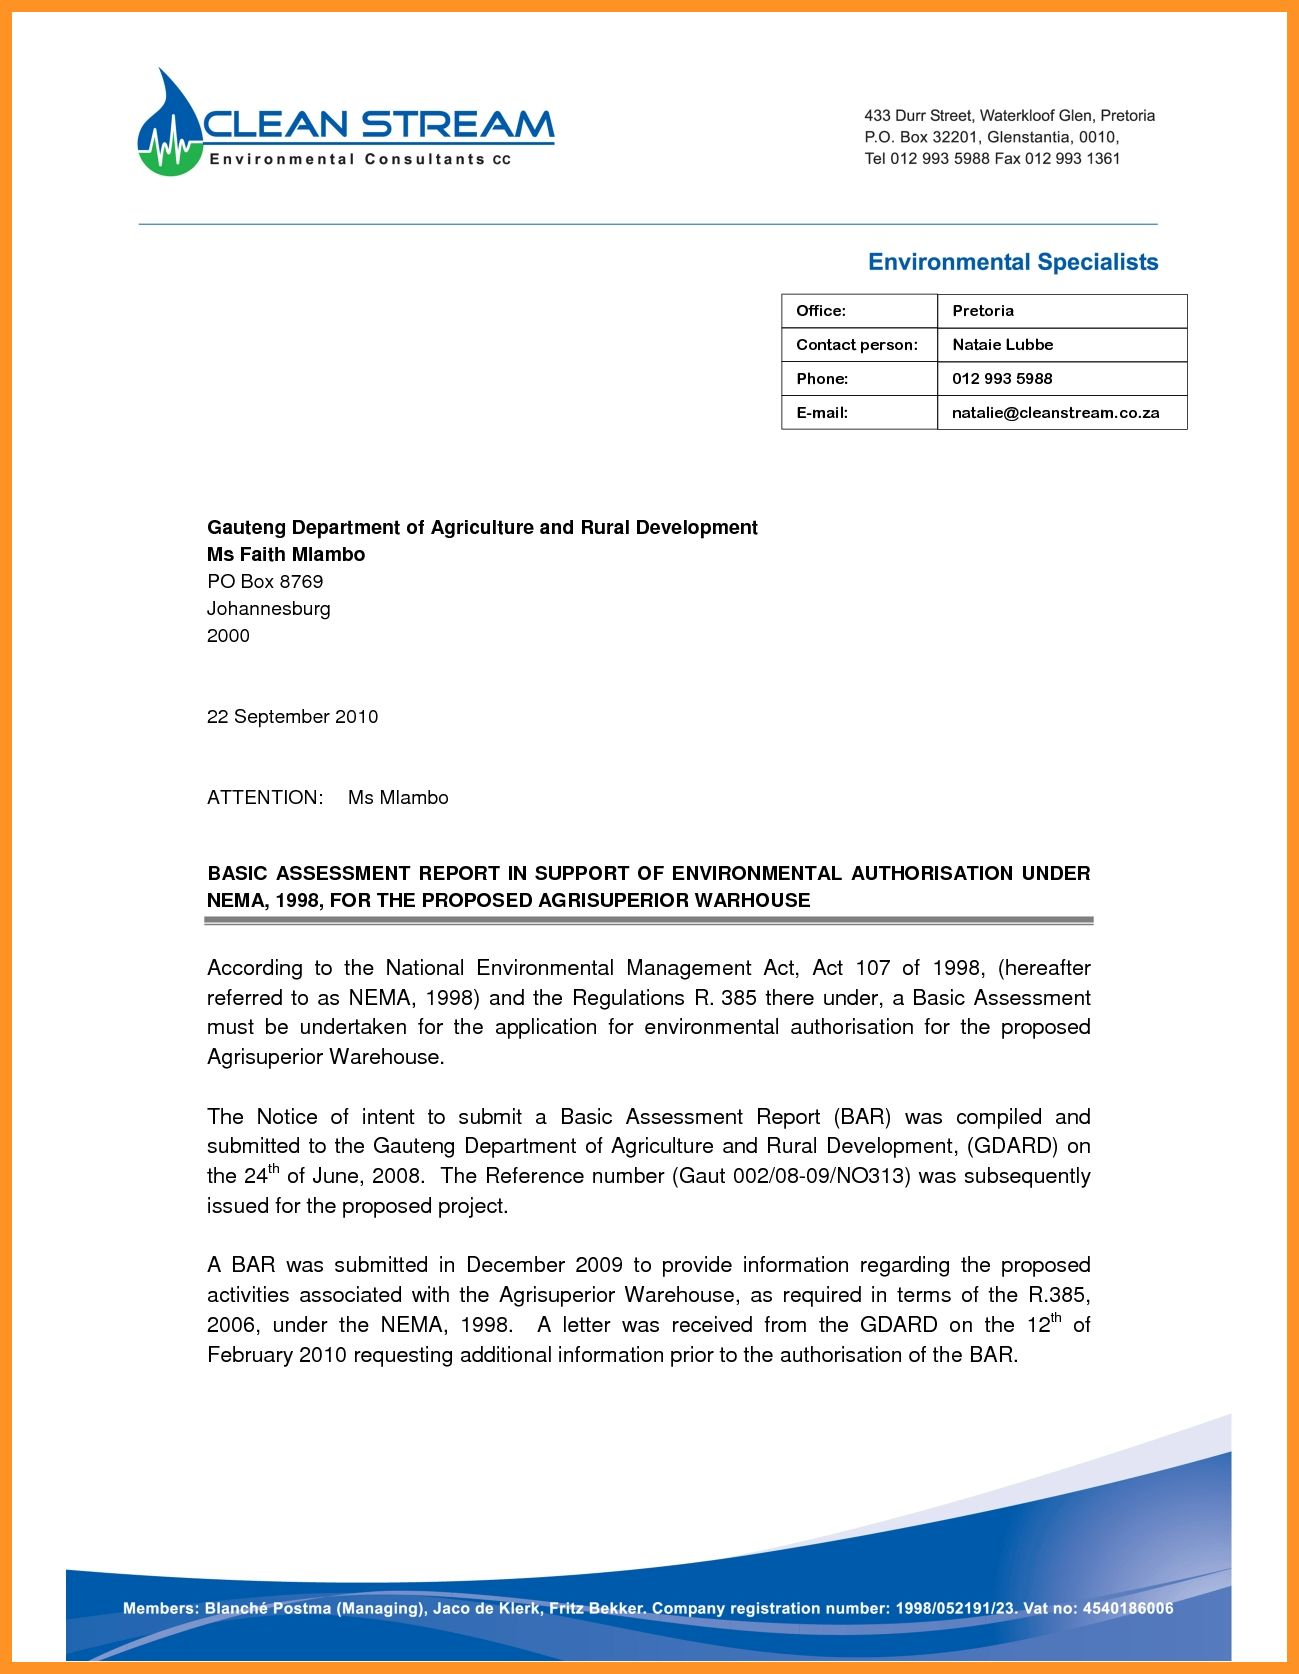 The Inspiring Microsoft Word Cover Letter Template Bio Letter Format Inside How To U Letter Template Word Business Letter Template Cover Letter Template Free